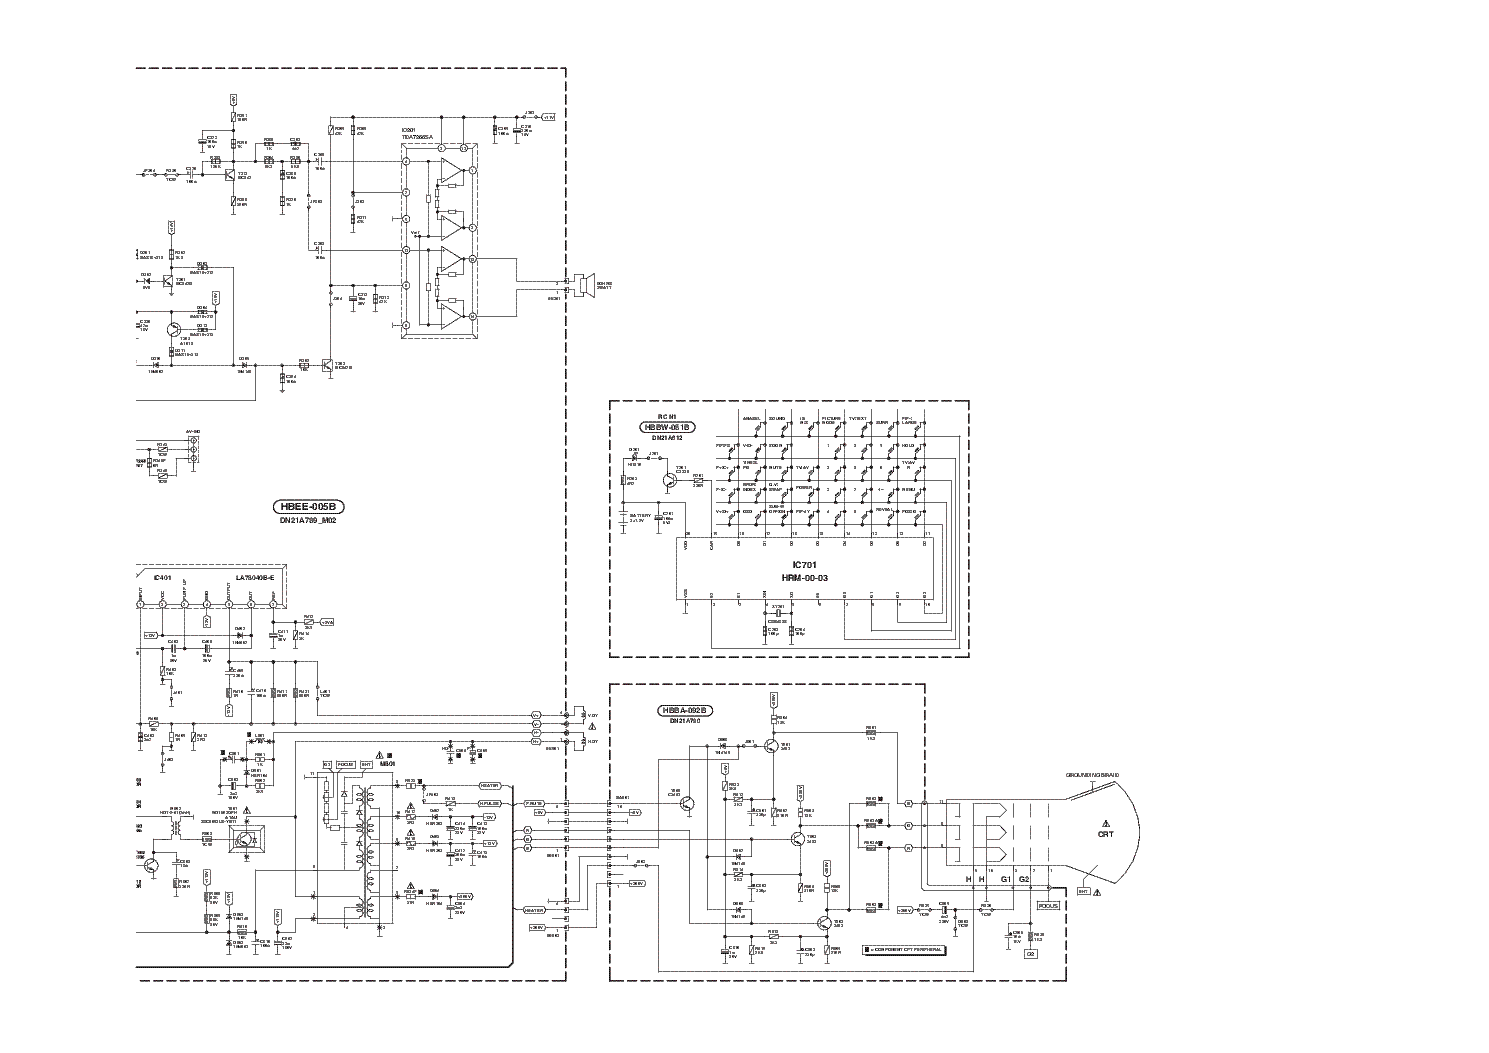 polytron t14n21tc bt6 sd11a396 hbt 00 04g sch service manual download  schematics  eeprom